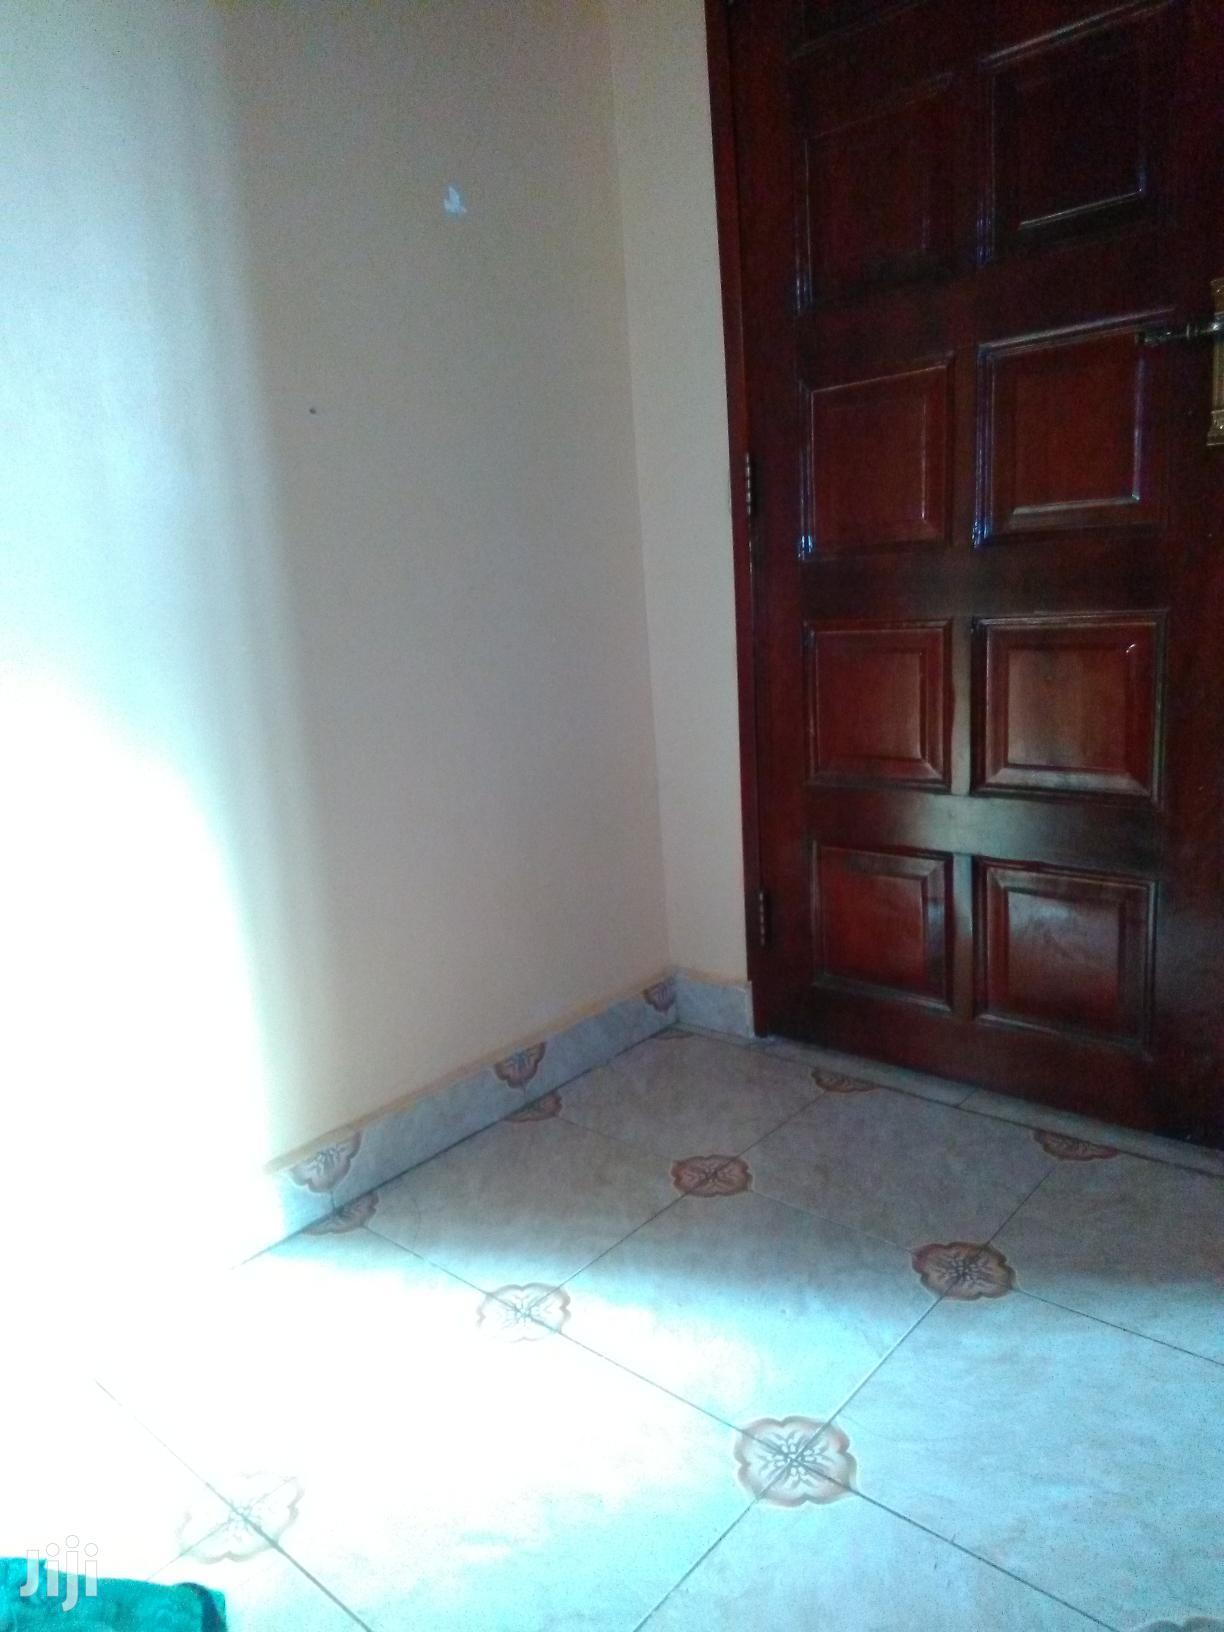 Three Bedroom House In Nabingo For Sale | Houses & Apartments For Sale for sale in Kampala, Central Region, Uganda